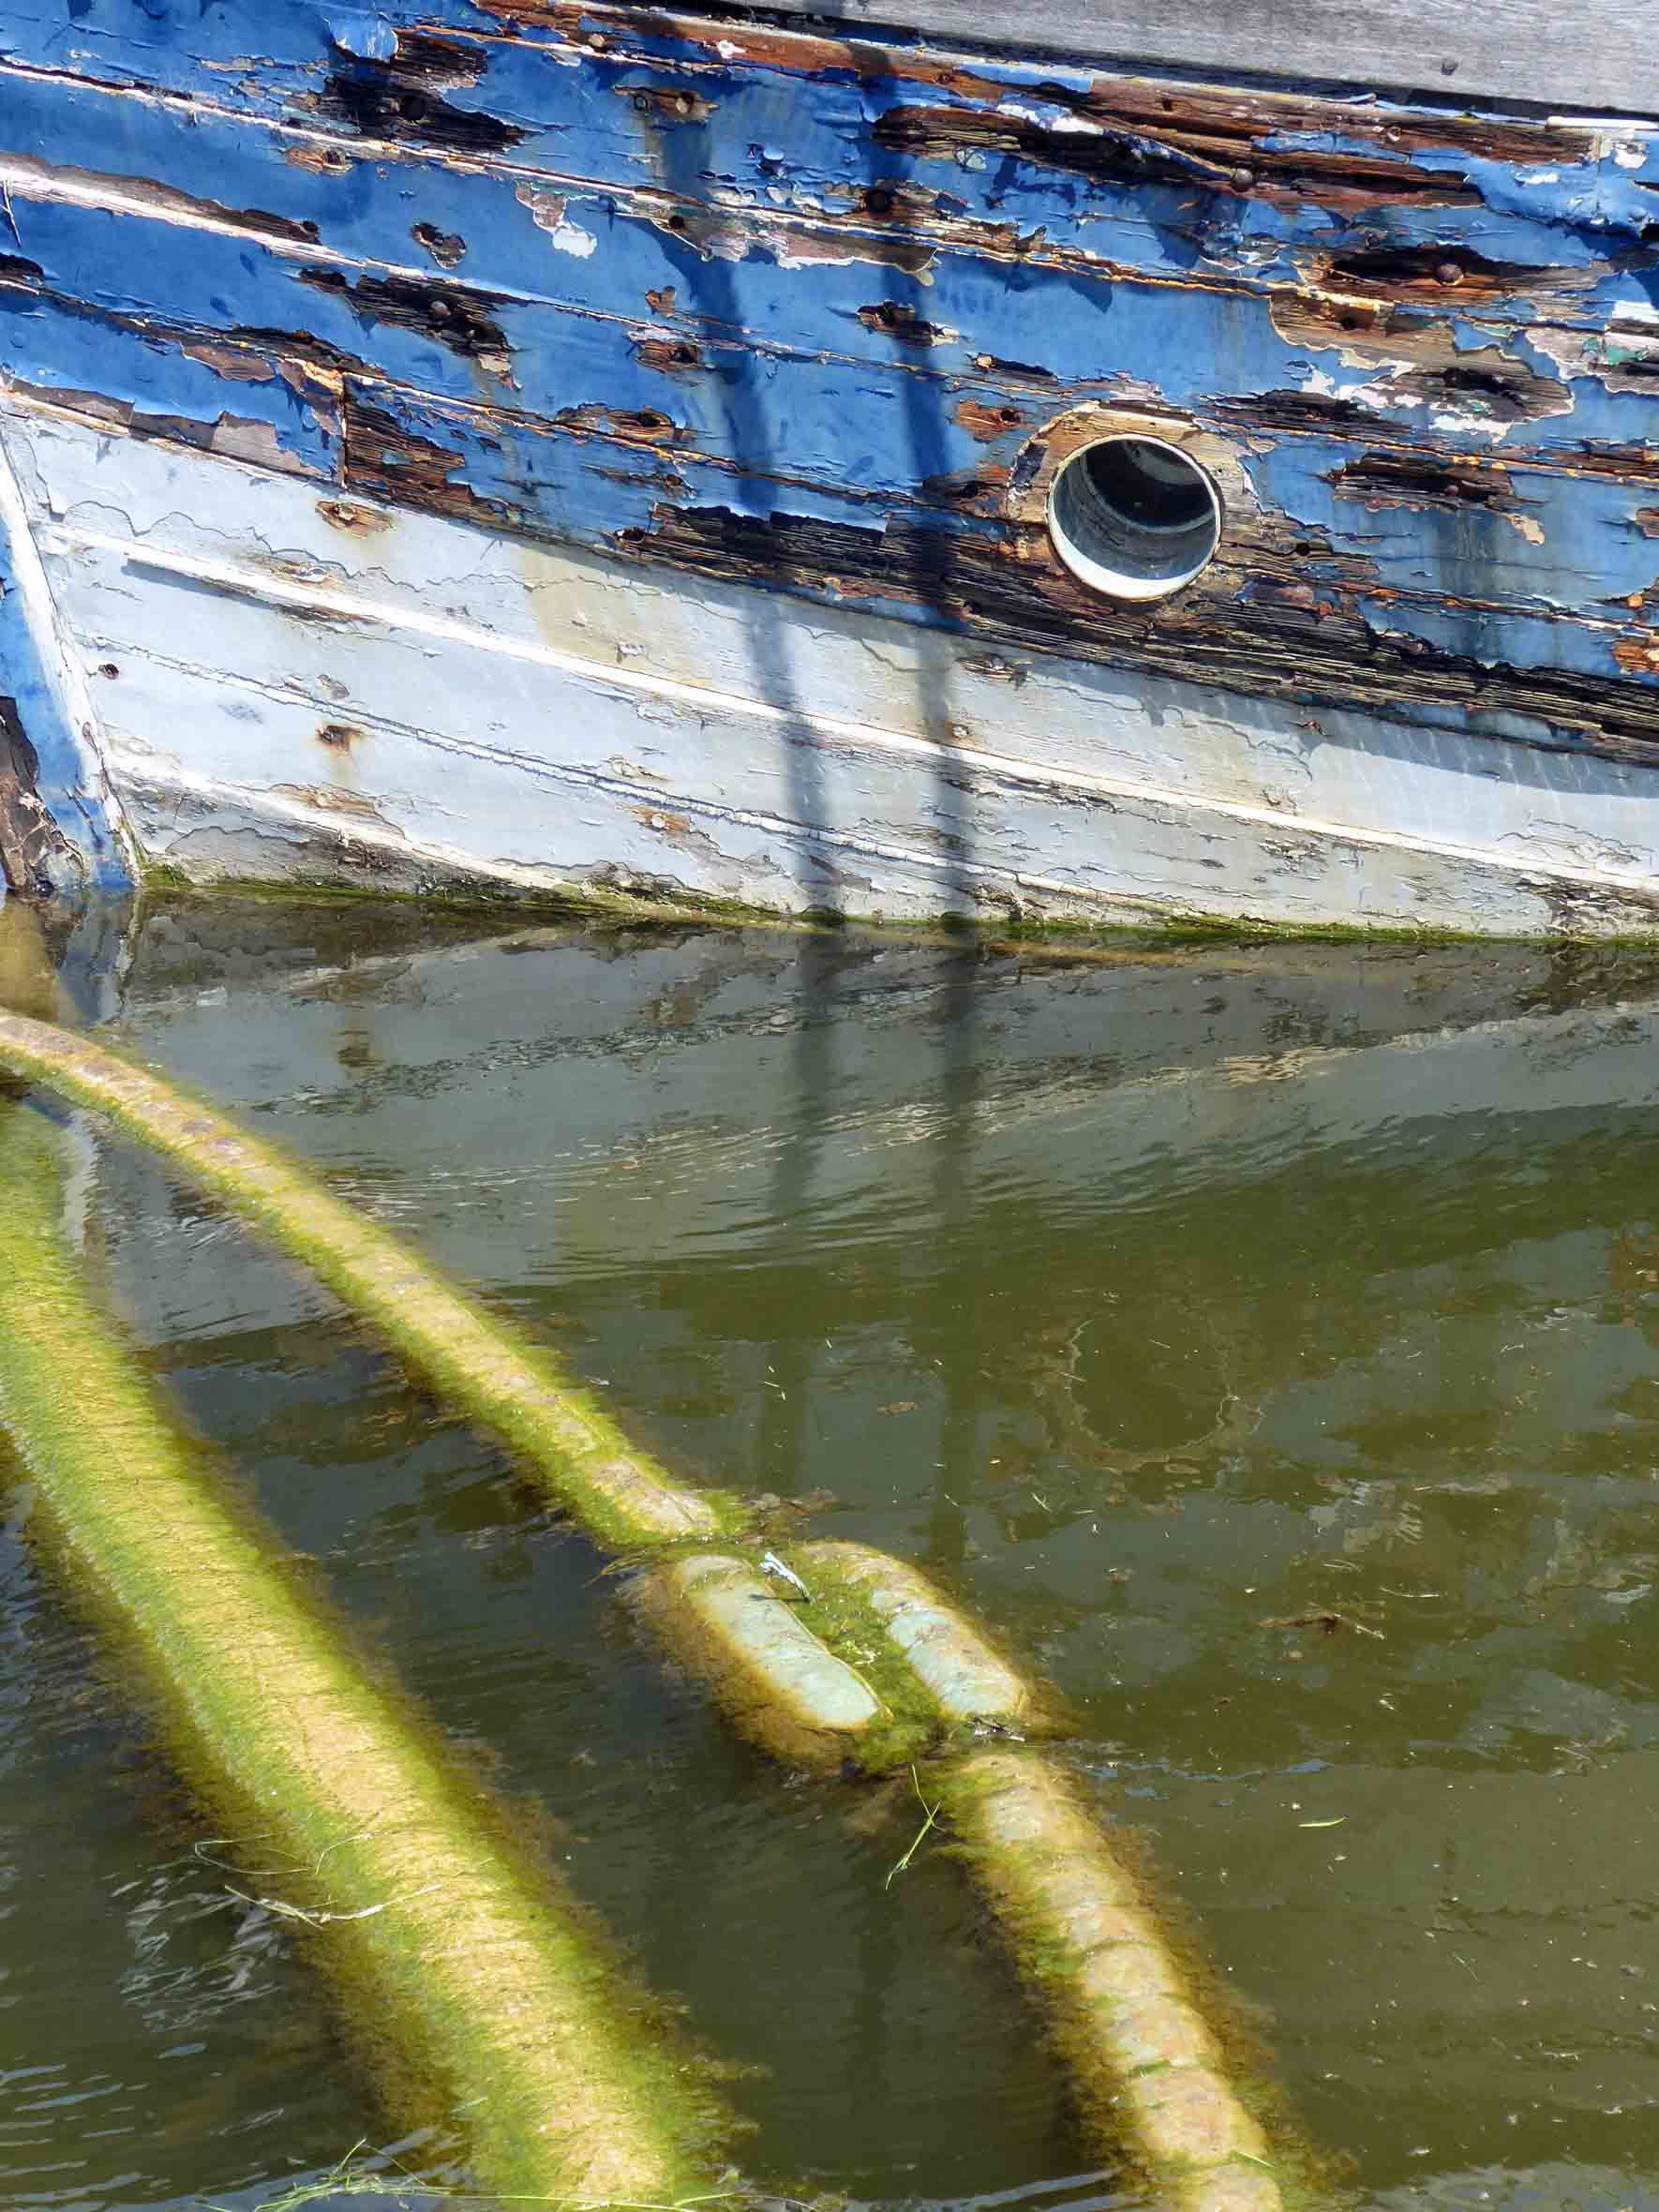 Flaking blue paint on a boat